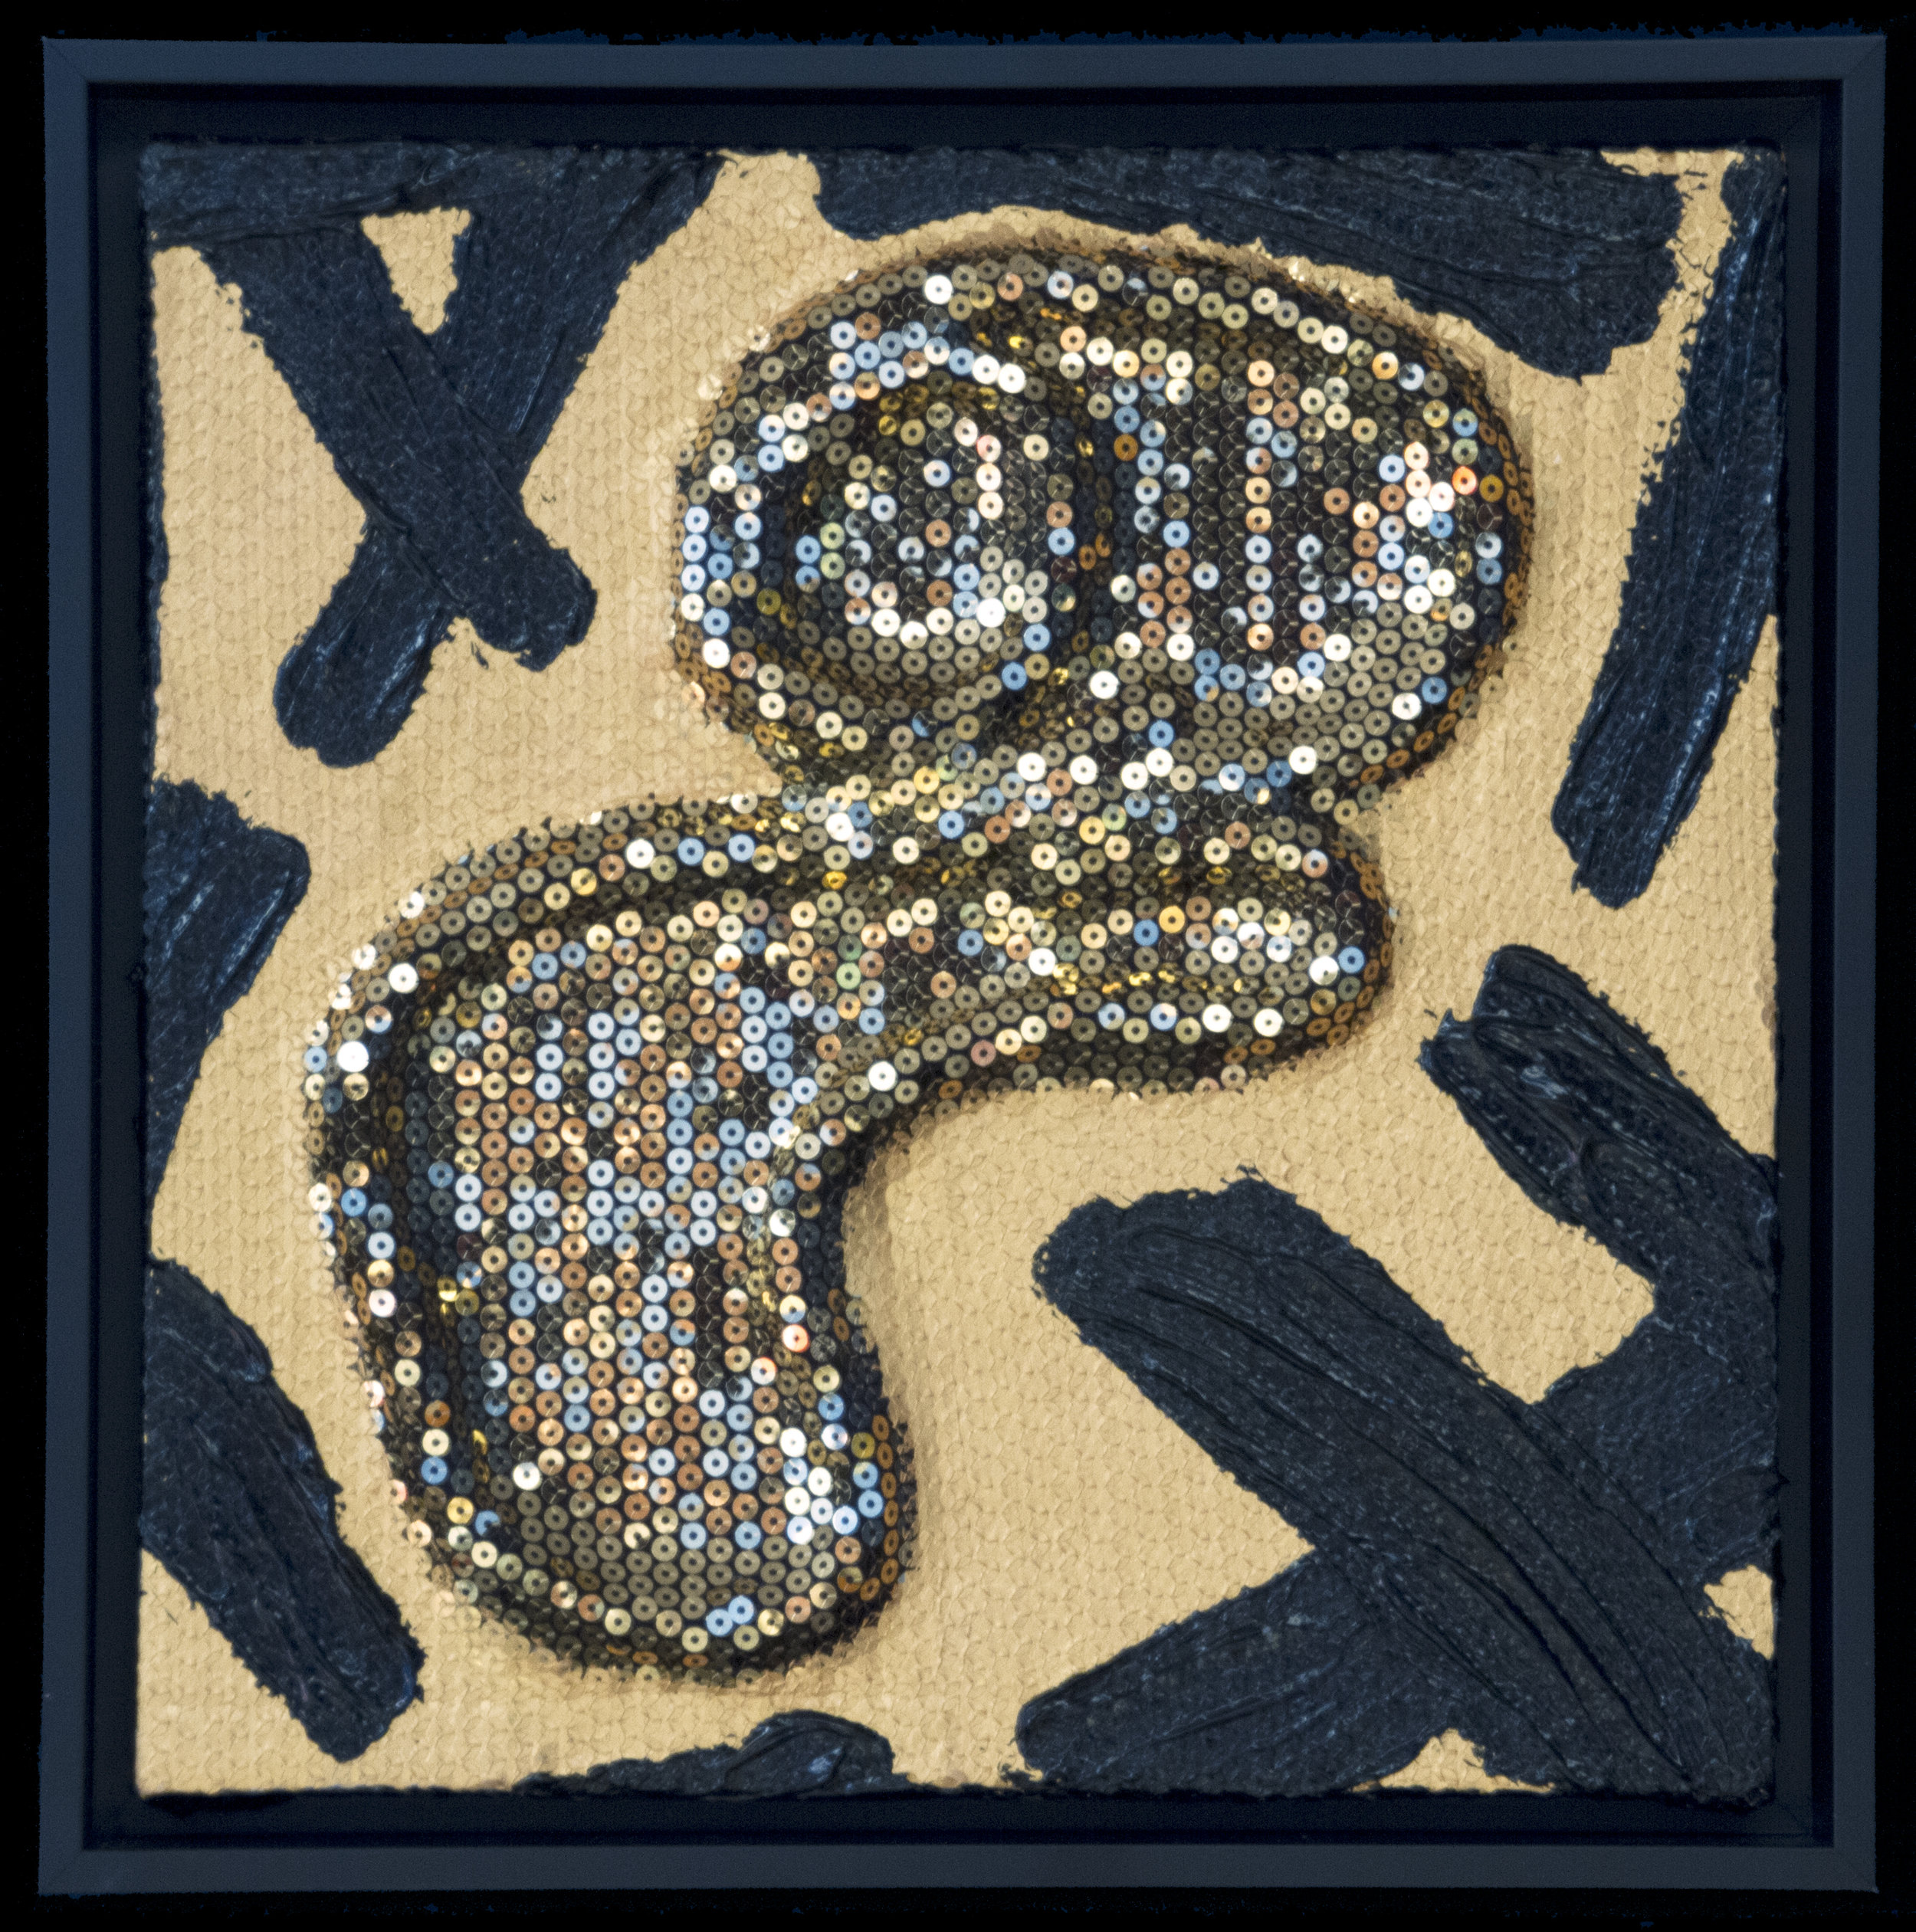 """Gold Sequence 'Wall Pillow' ""     Polyester Cording & Sequence Material and Acrylic Paint on Canvas    Image Size 12"" X 12"" X 1 1/2""    Black Floater Frame Size  Approx. 13"" X 13"" X 2"""